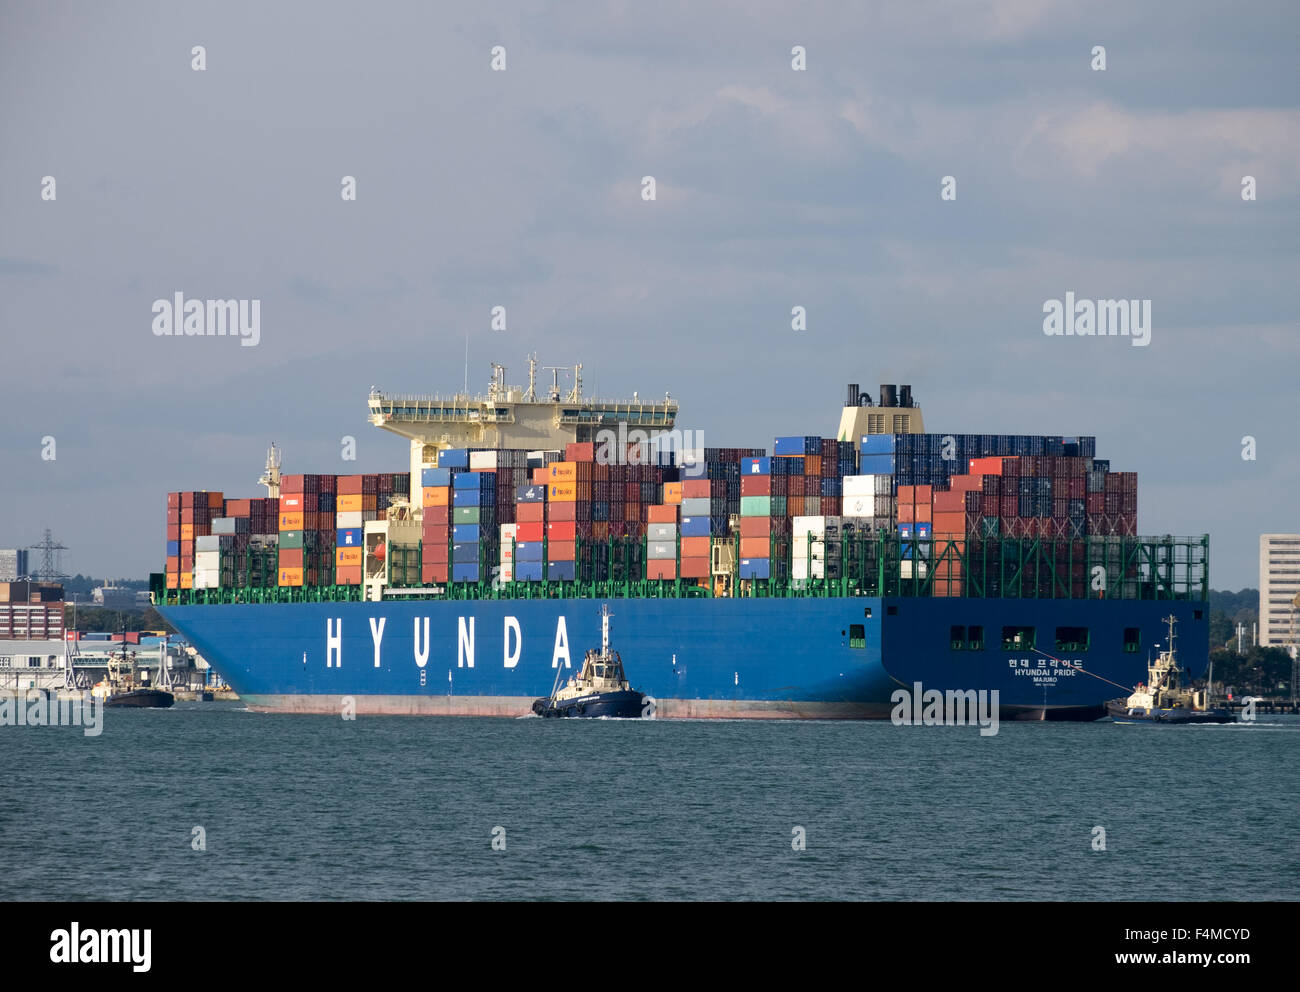 Hyundai Pride container ship arriving at Southampton Docks Container Port - Stock Image